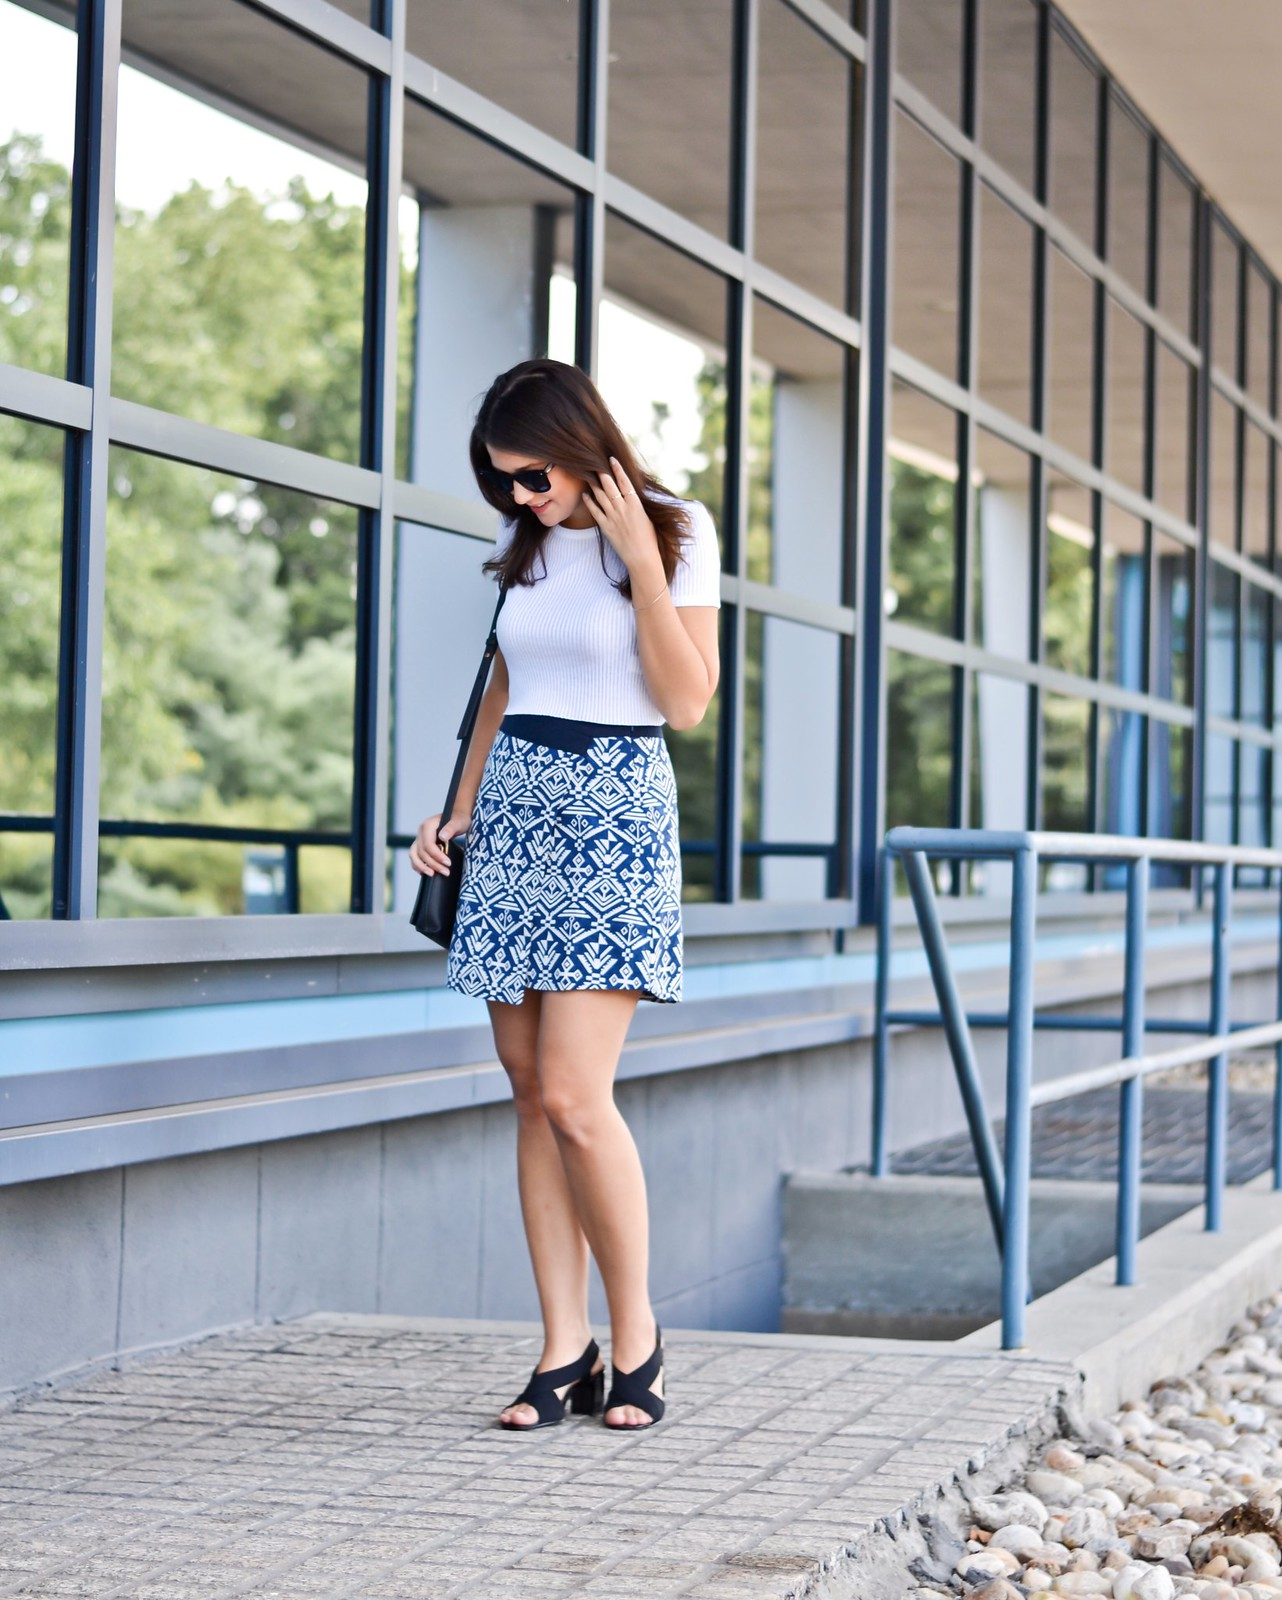 Pattern Skirt White Top Outfit